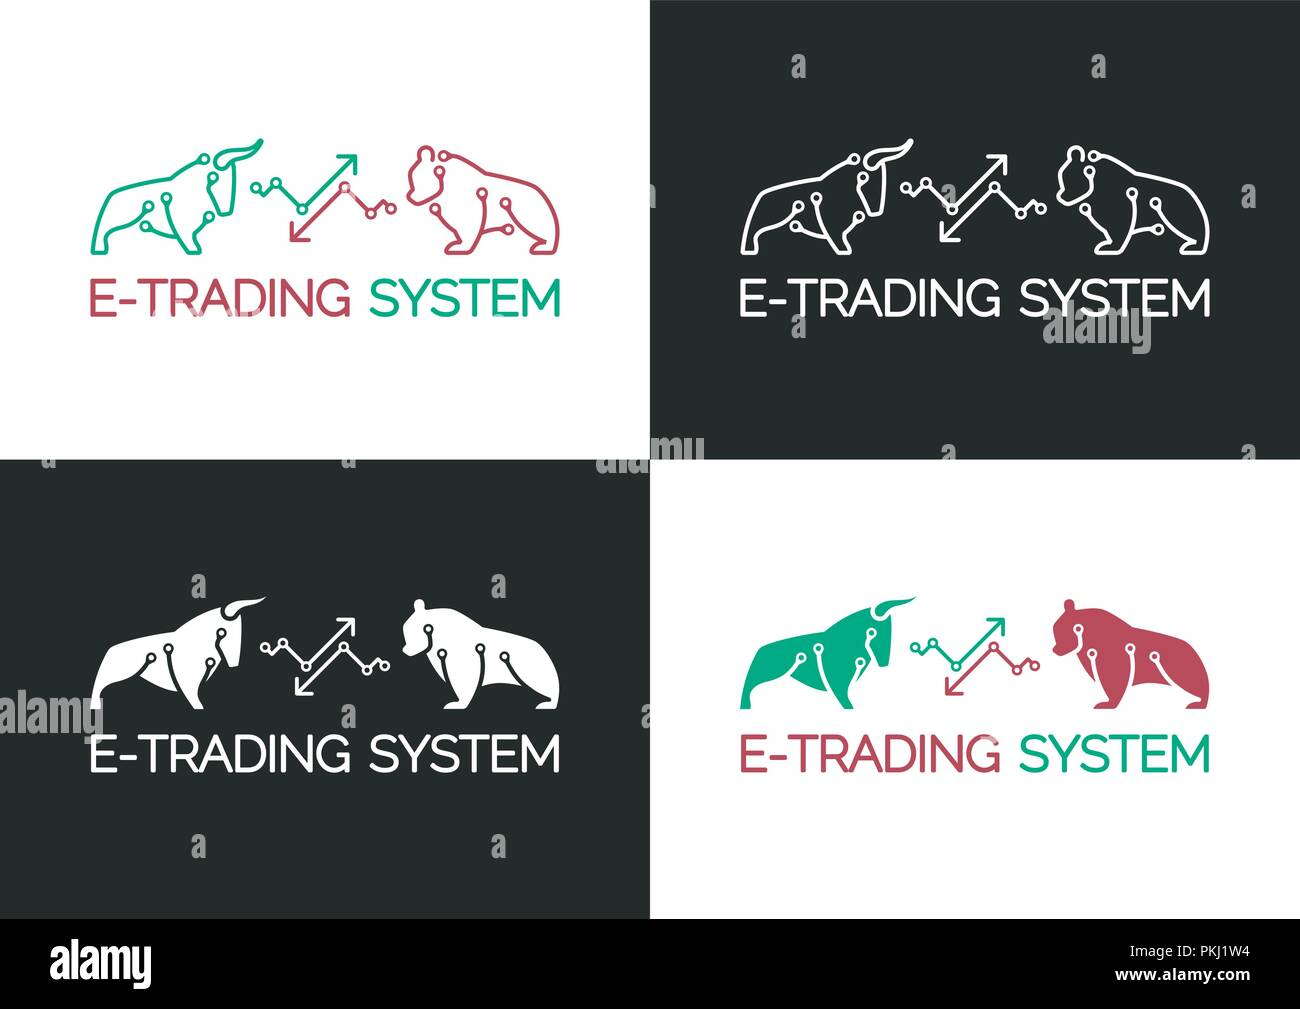 E-Trading System Emblem - Stock Vector